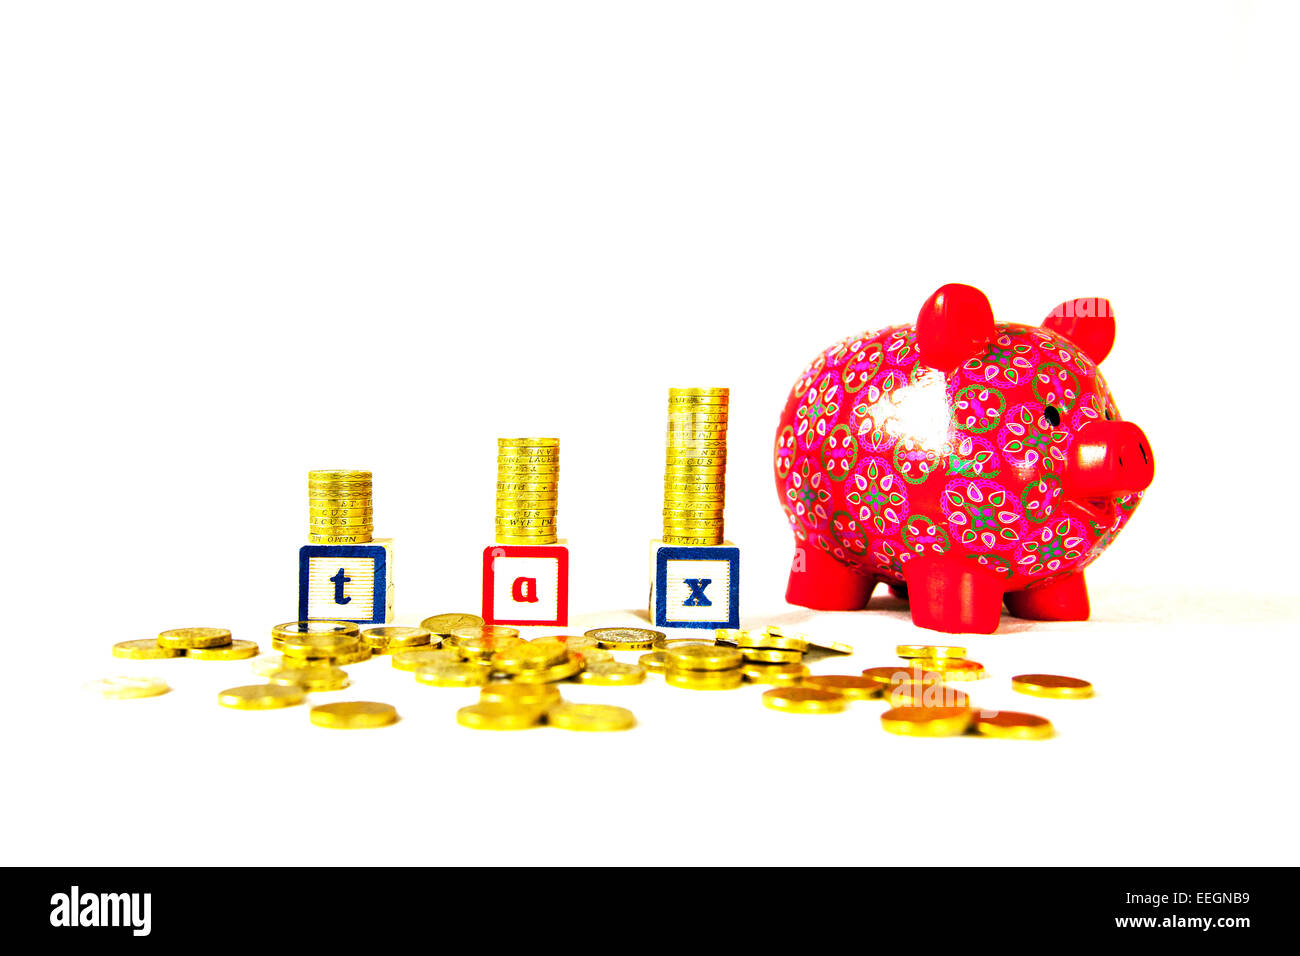 tax rising money cost cash piles stacks word coins pounds pound vat revenue income cut out copy space white background - Stock Image